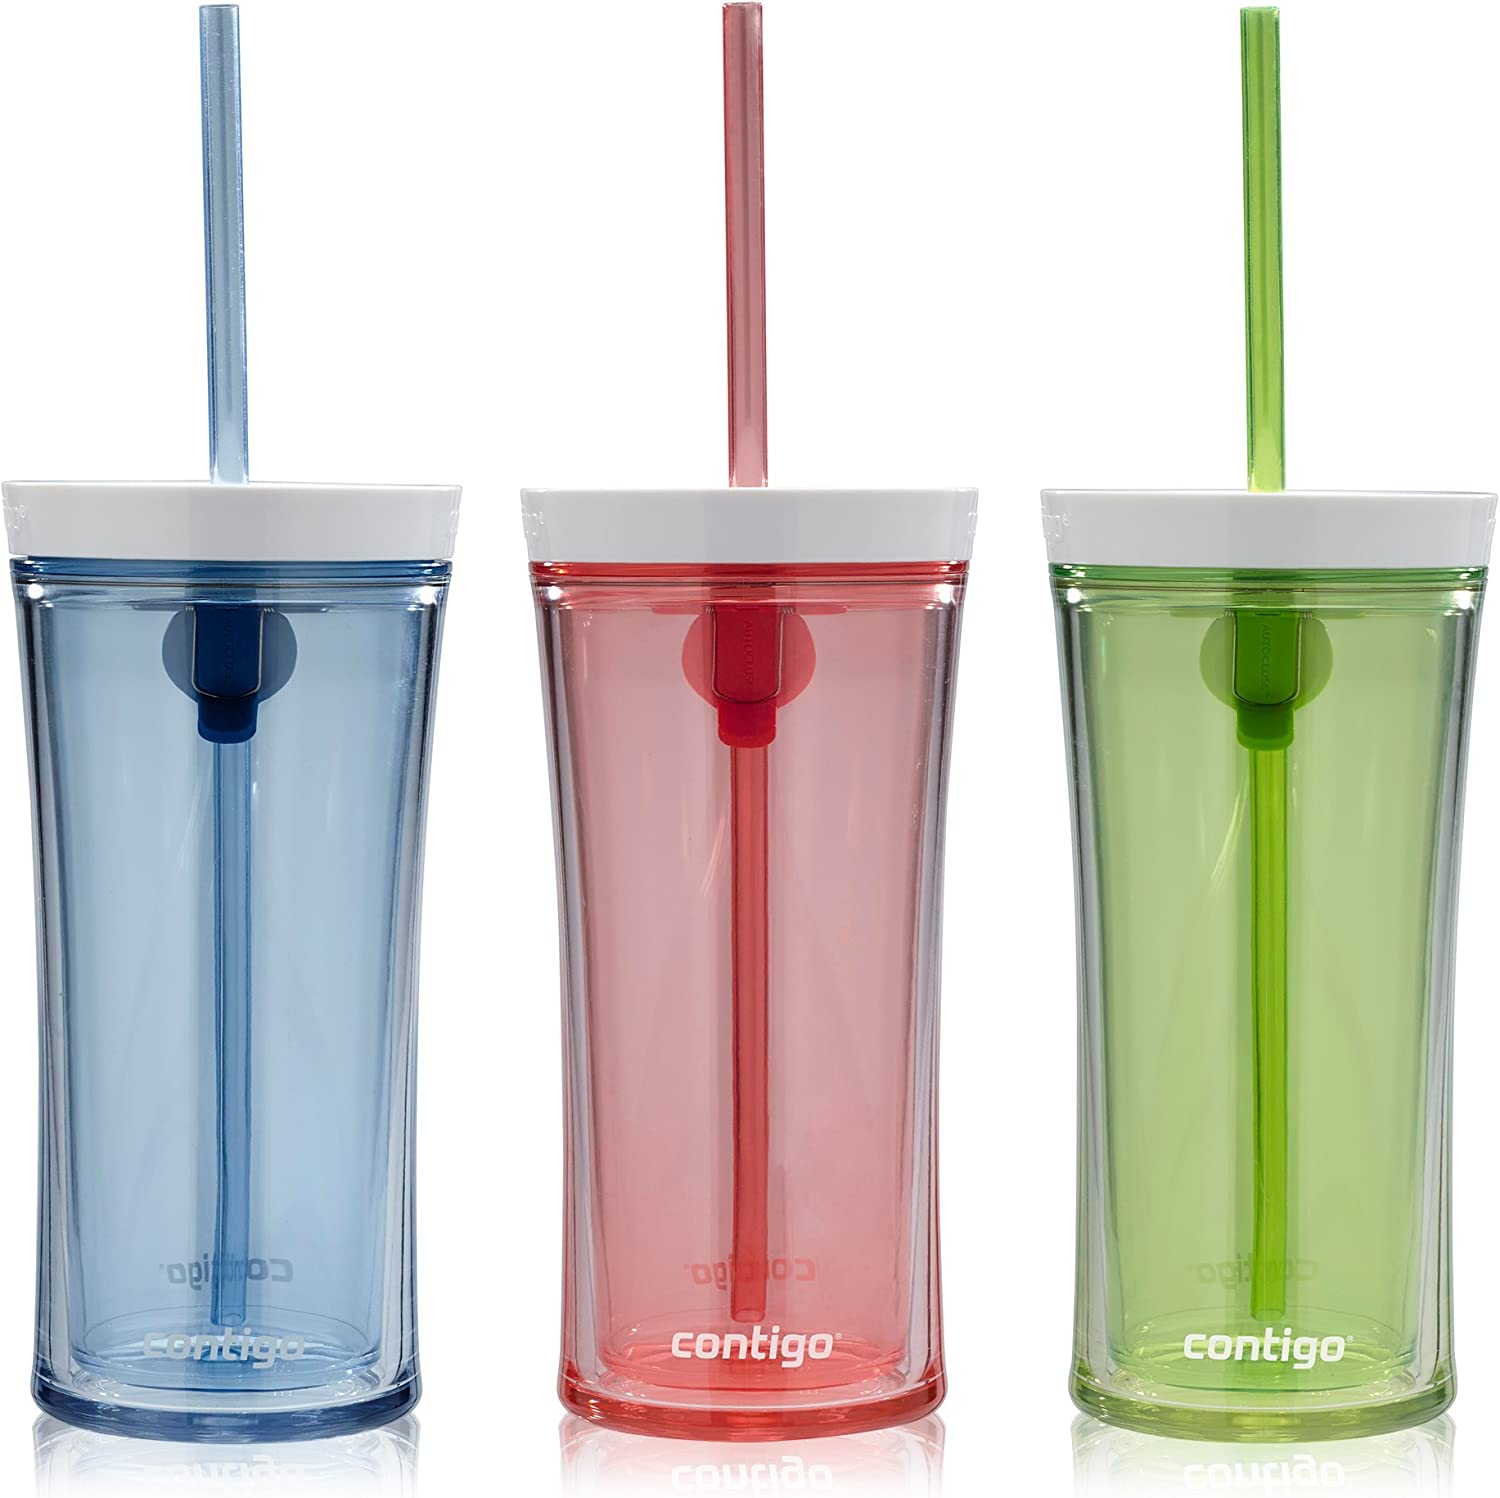 Contigo Shake & Go Water Bottles, 16oz, Monaco/Citron/Watermelon, 3-Pack